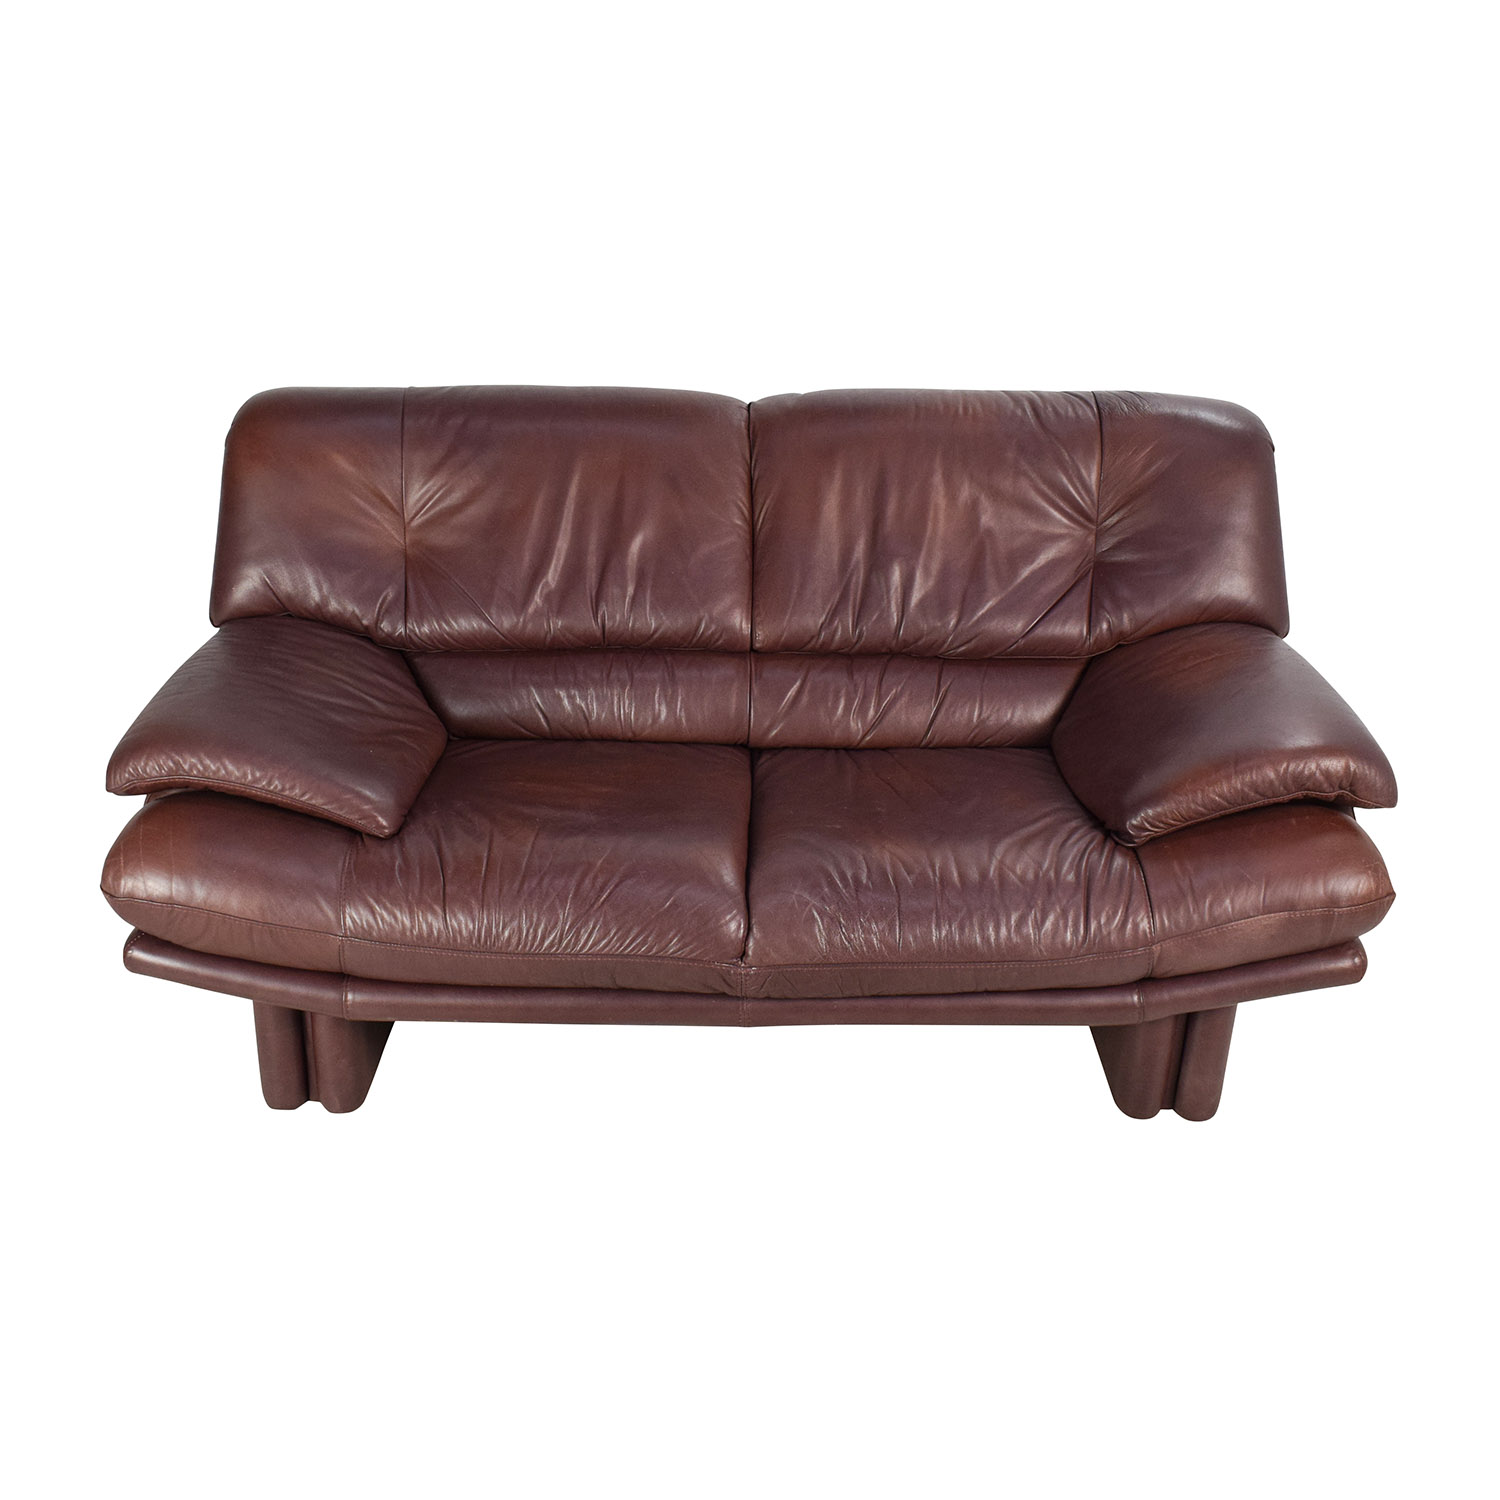 67 Off Maurice Villency Maurice Villency Brown Leather Sofa Sofas ~ Used Leather Sofa Prices